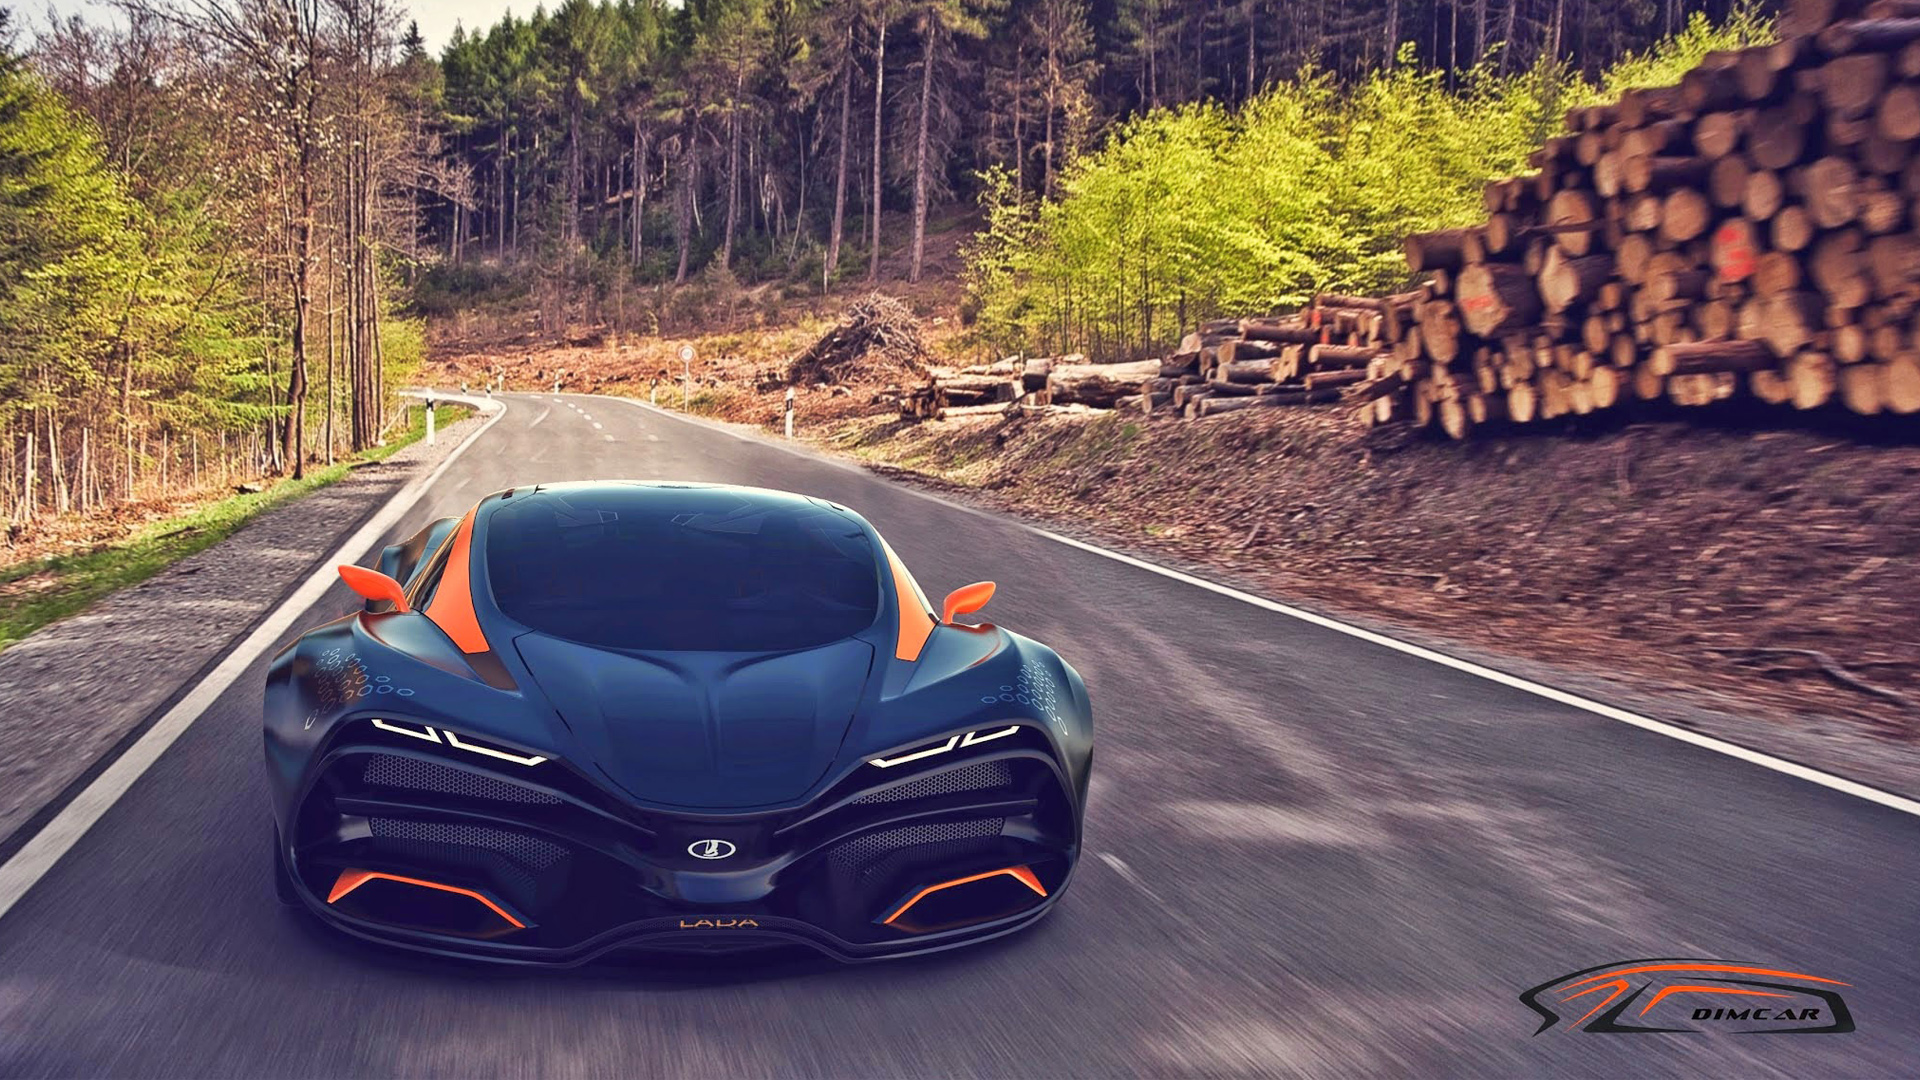 2015 Lada Raven Supercar Concept Wallpaper HD Car